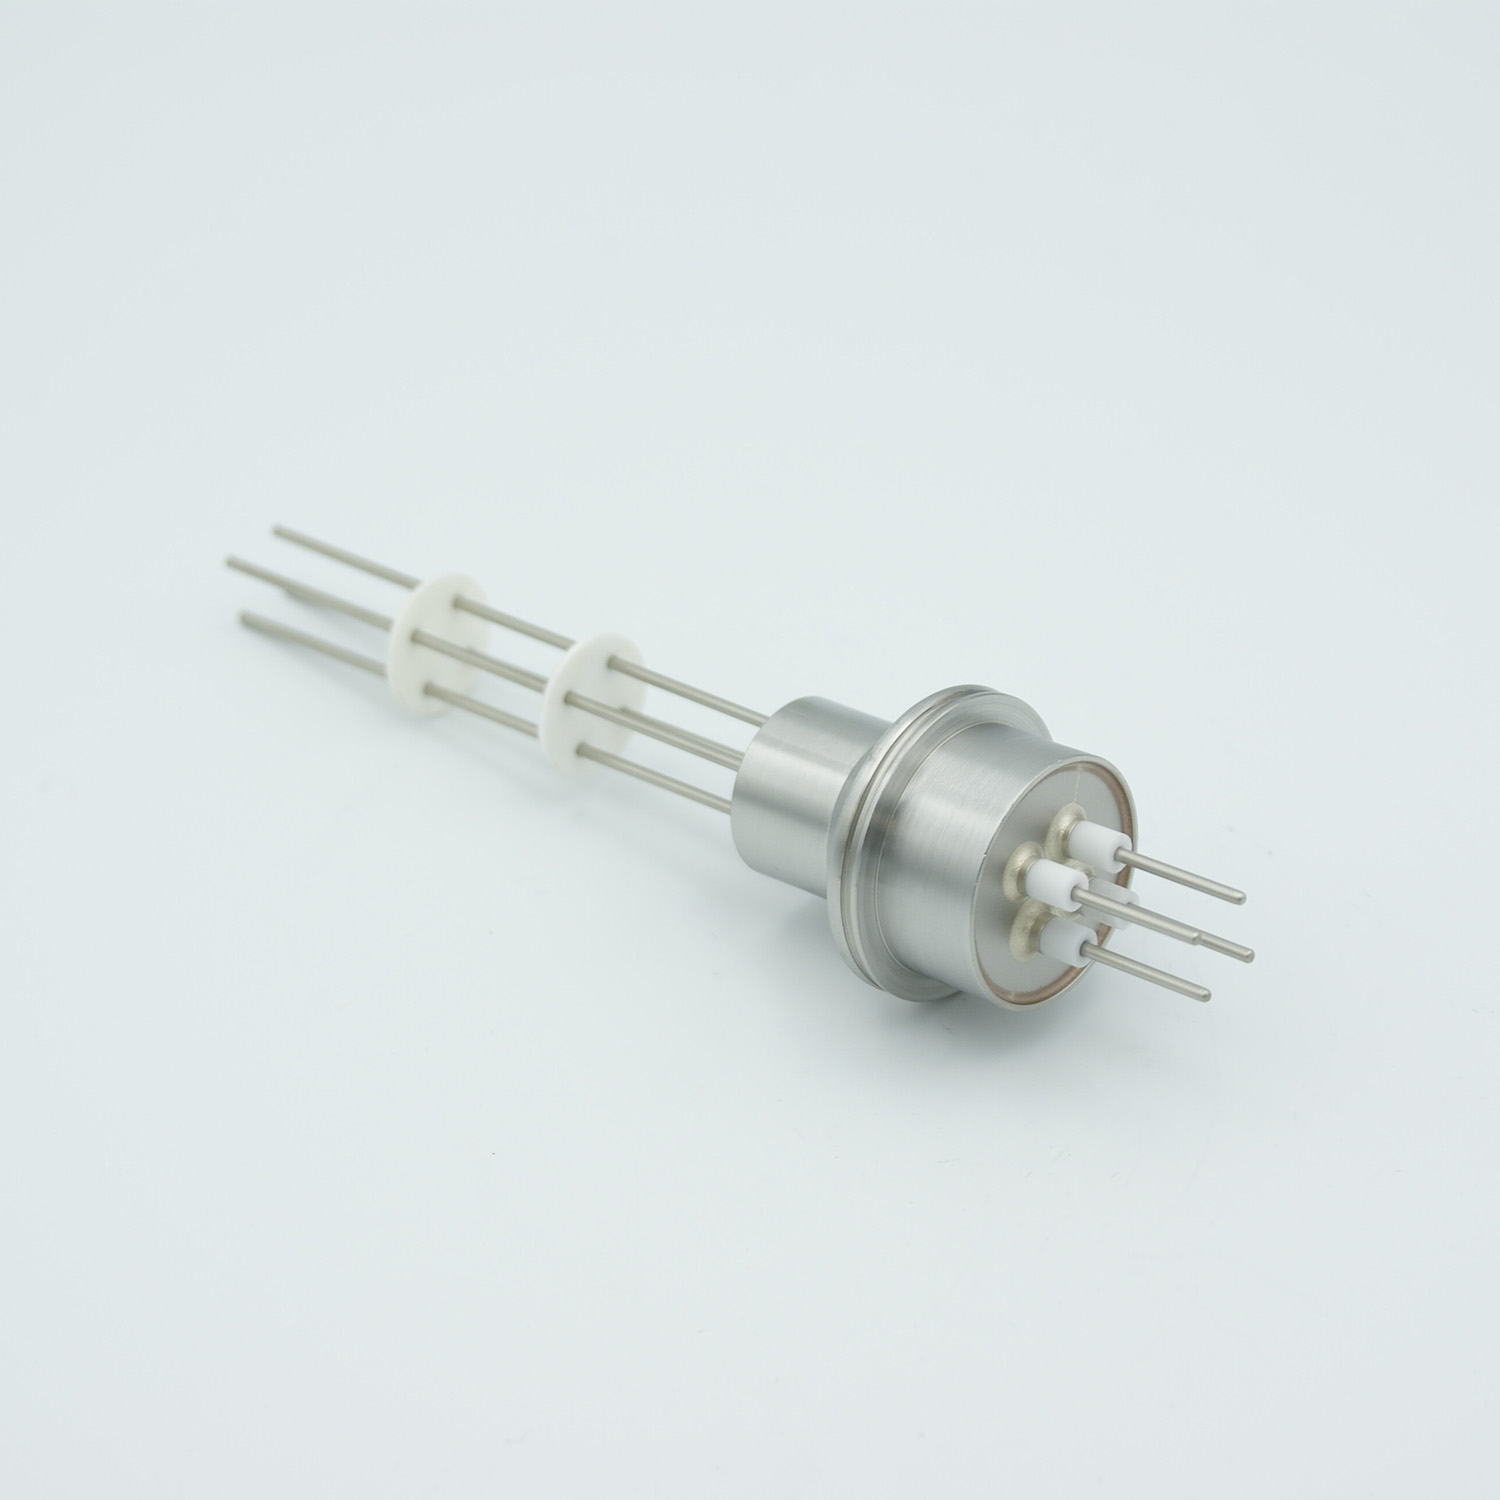 2 pair Thermocouple type-K feedthrough for push on connectors, weld fitting